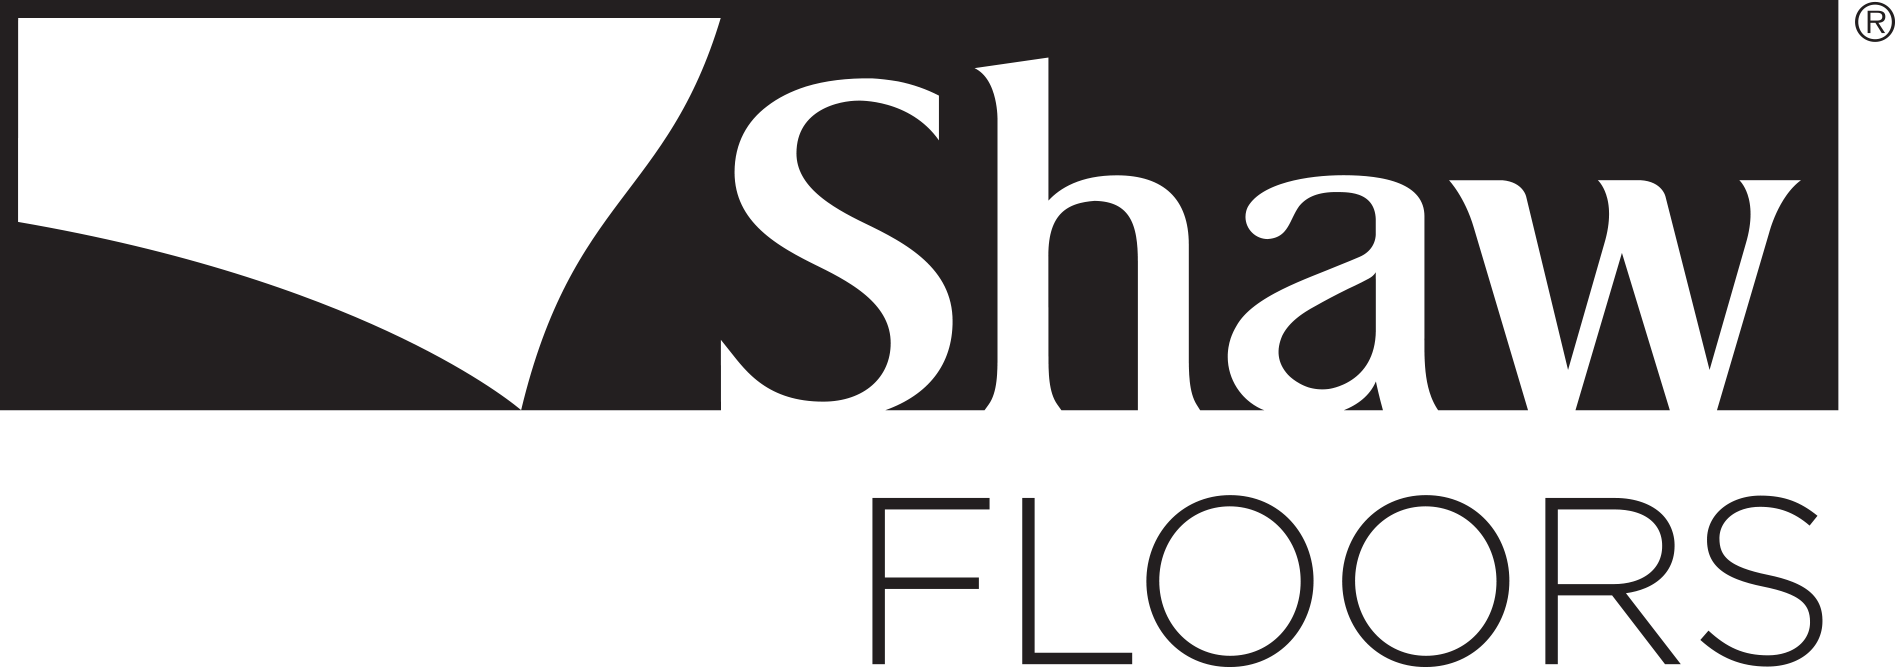 https://athomefloors.com/wp-content/uploads/2018/10/Shaw-Floors-Logo_k.png